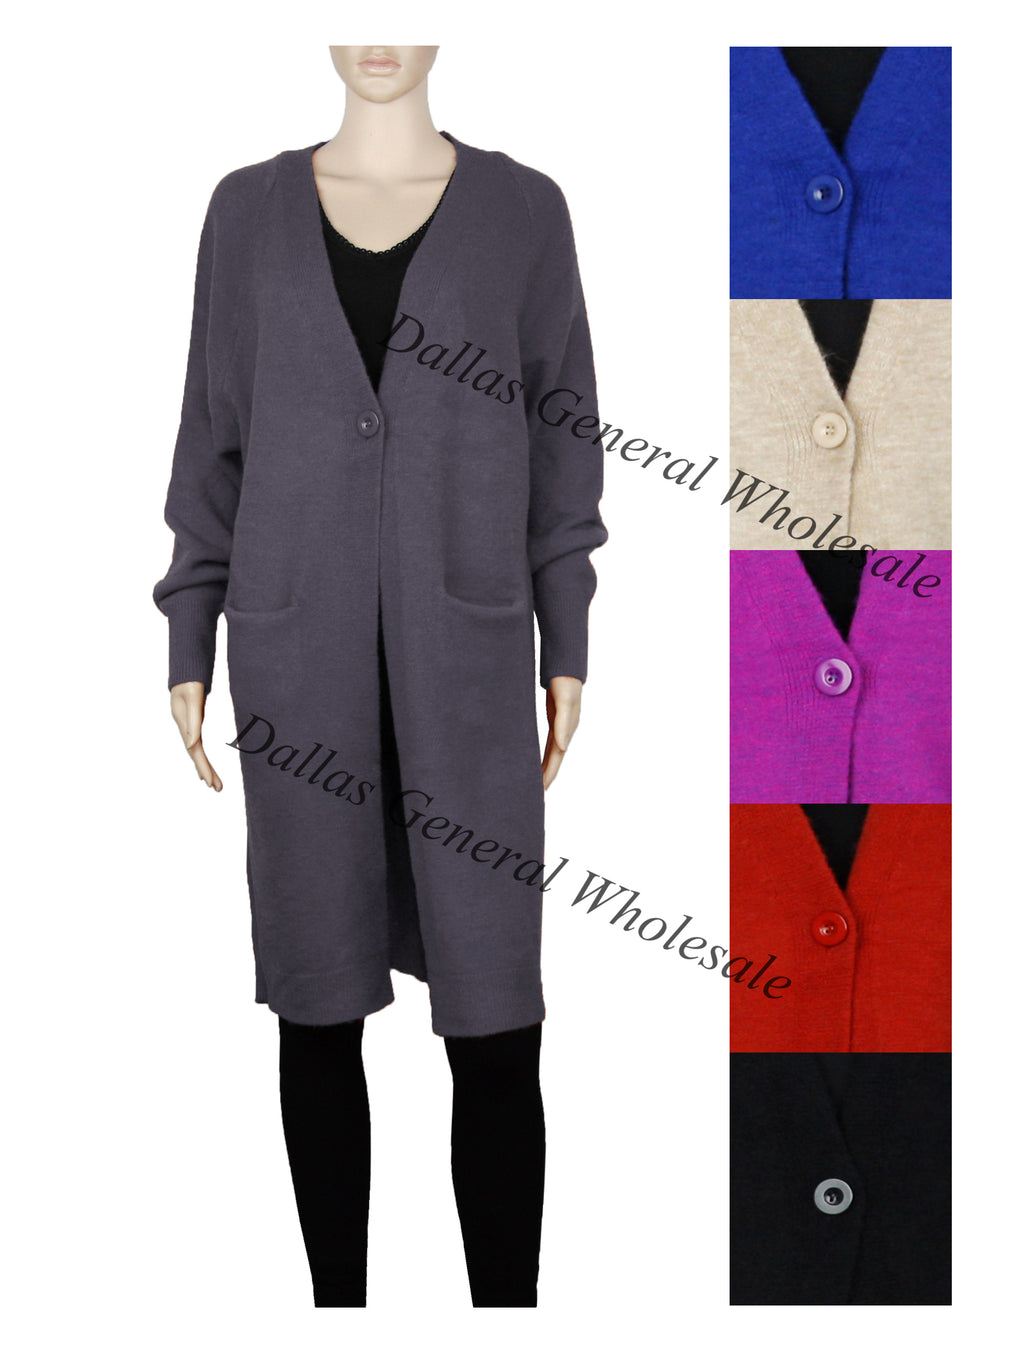 Ladies Fashion Sweater Cardigans Wholesale